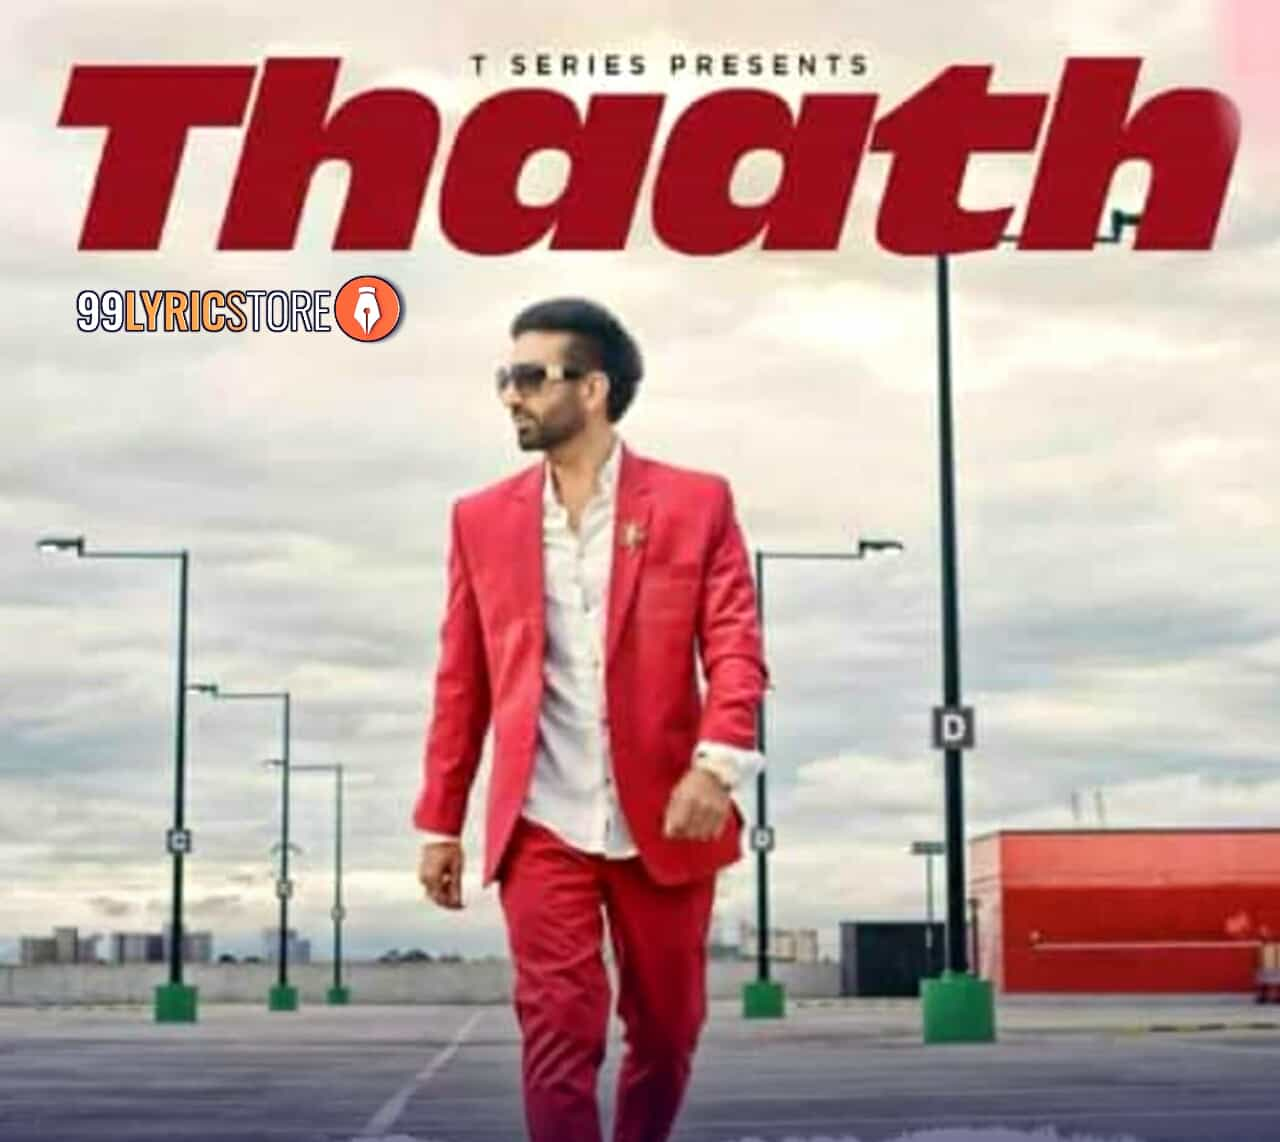 Thaath Punjabi Song Sung by Preet Harpal